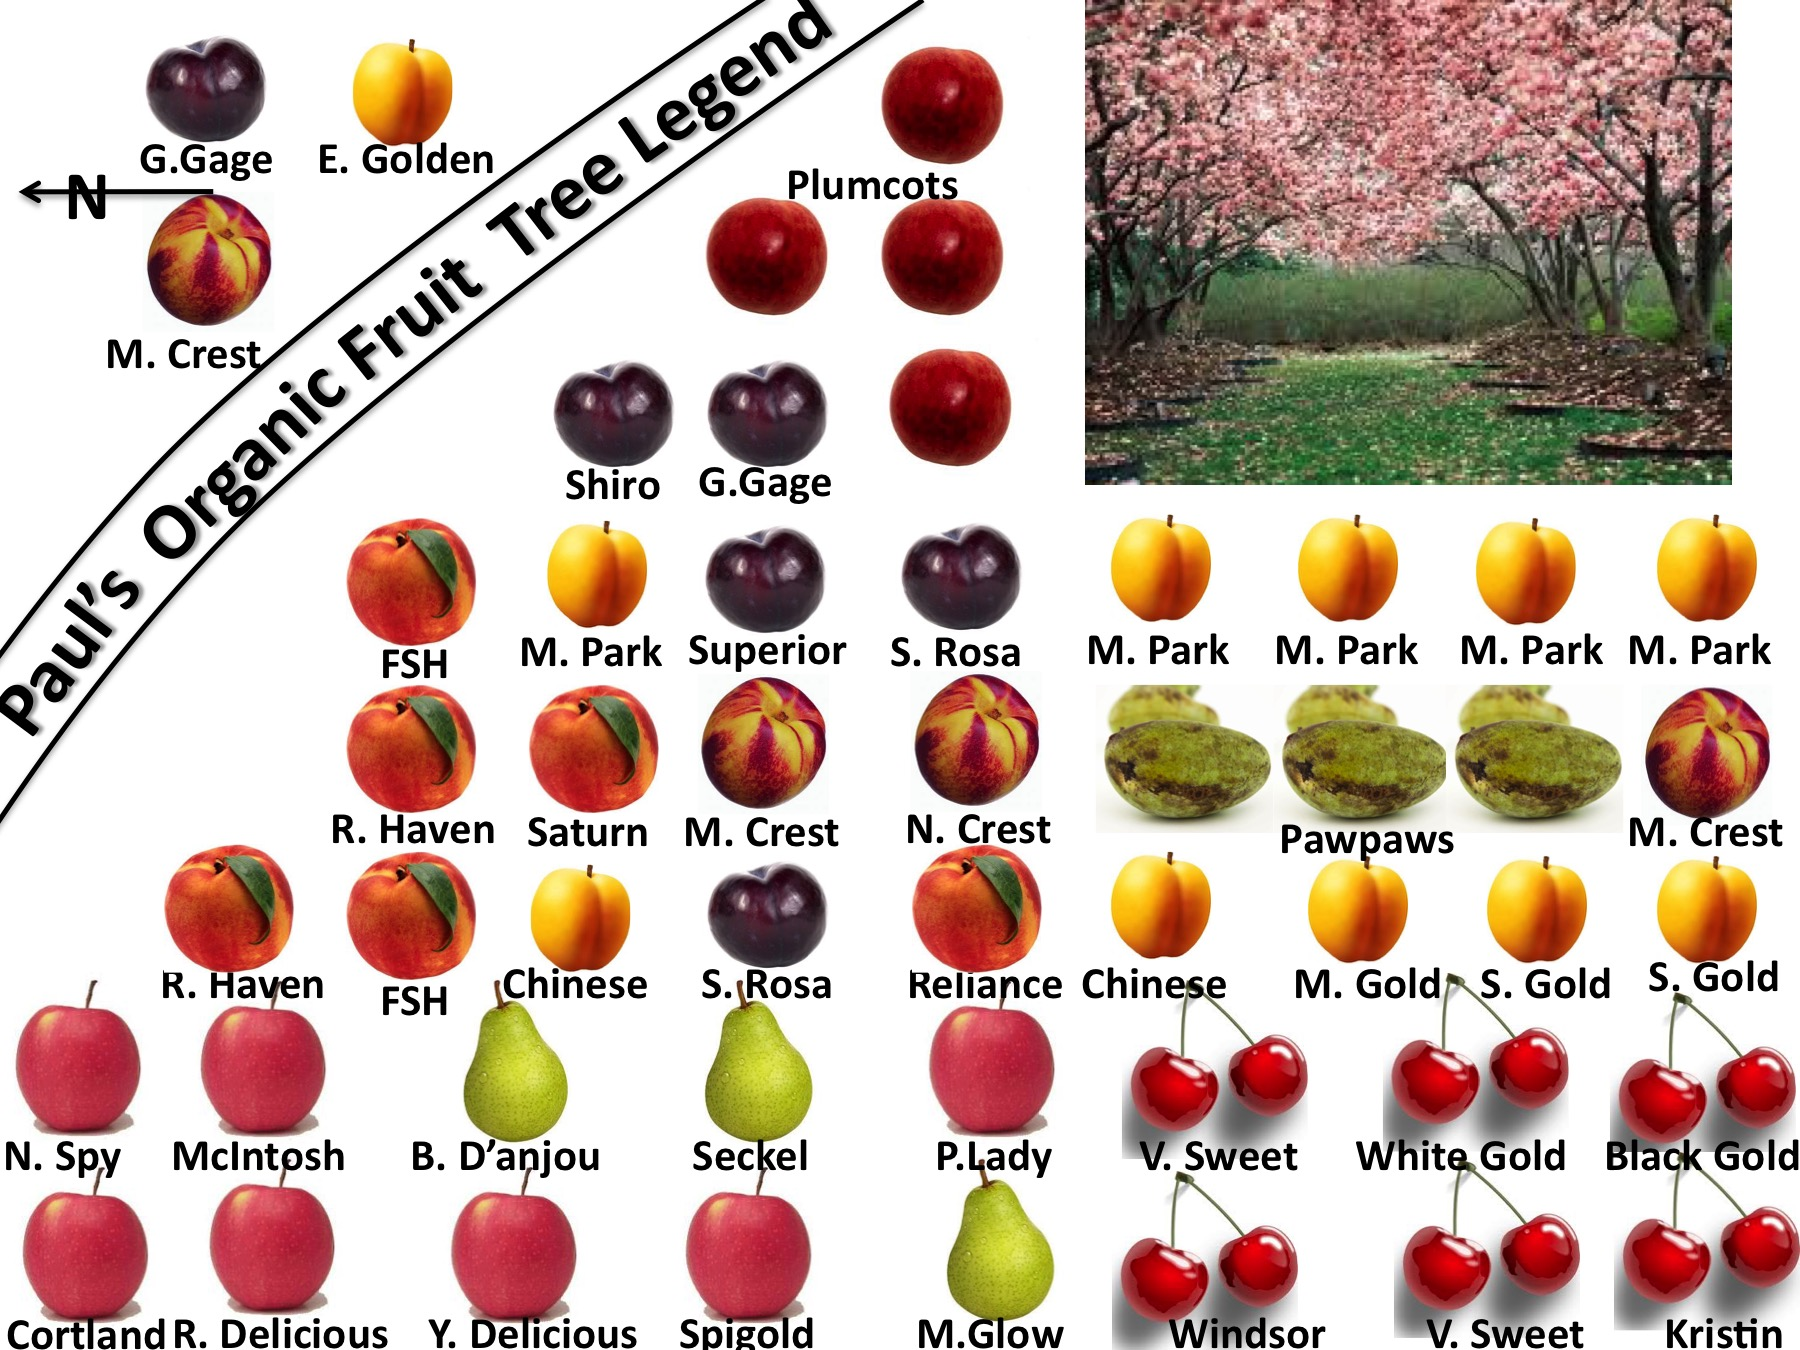 Fruit Tree Legend